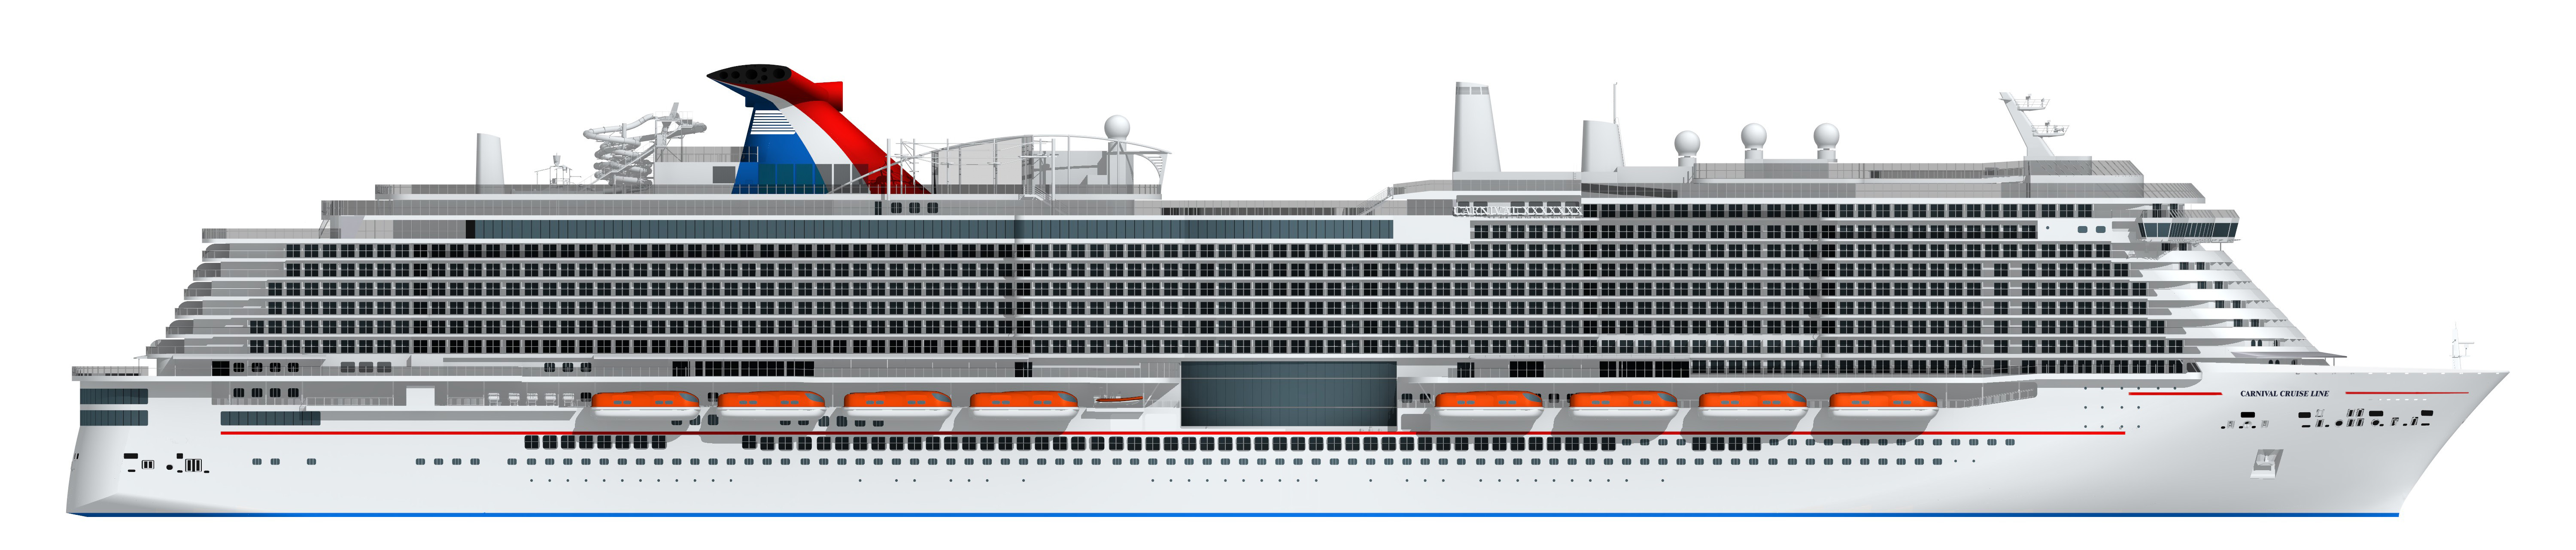 Carnival Cruise Line and Canaveral Port Authority Reach Agreement on State-of-the-Art Cruise Terminal to Accommodate Plans for New 180,000-ton Cruise Ship's Arrival